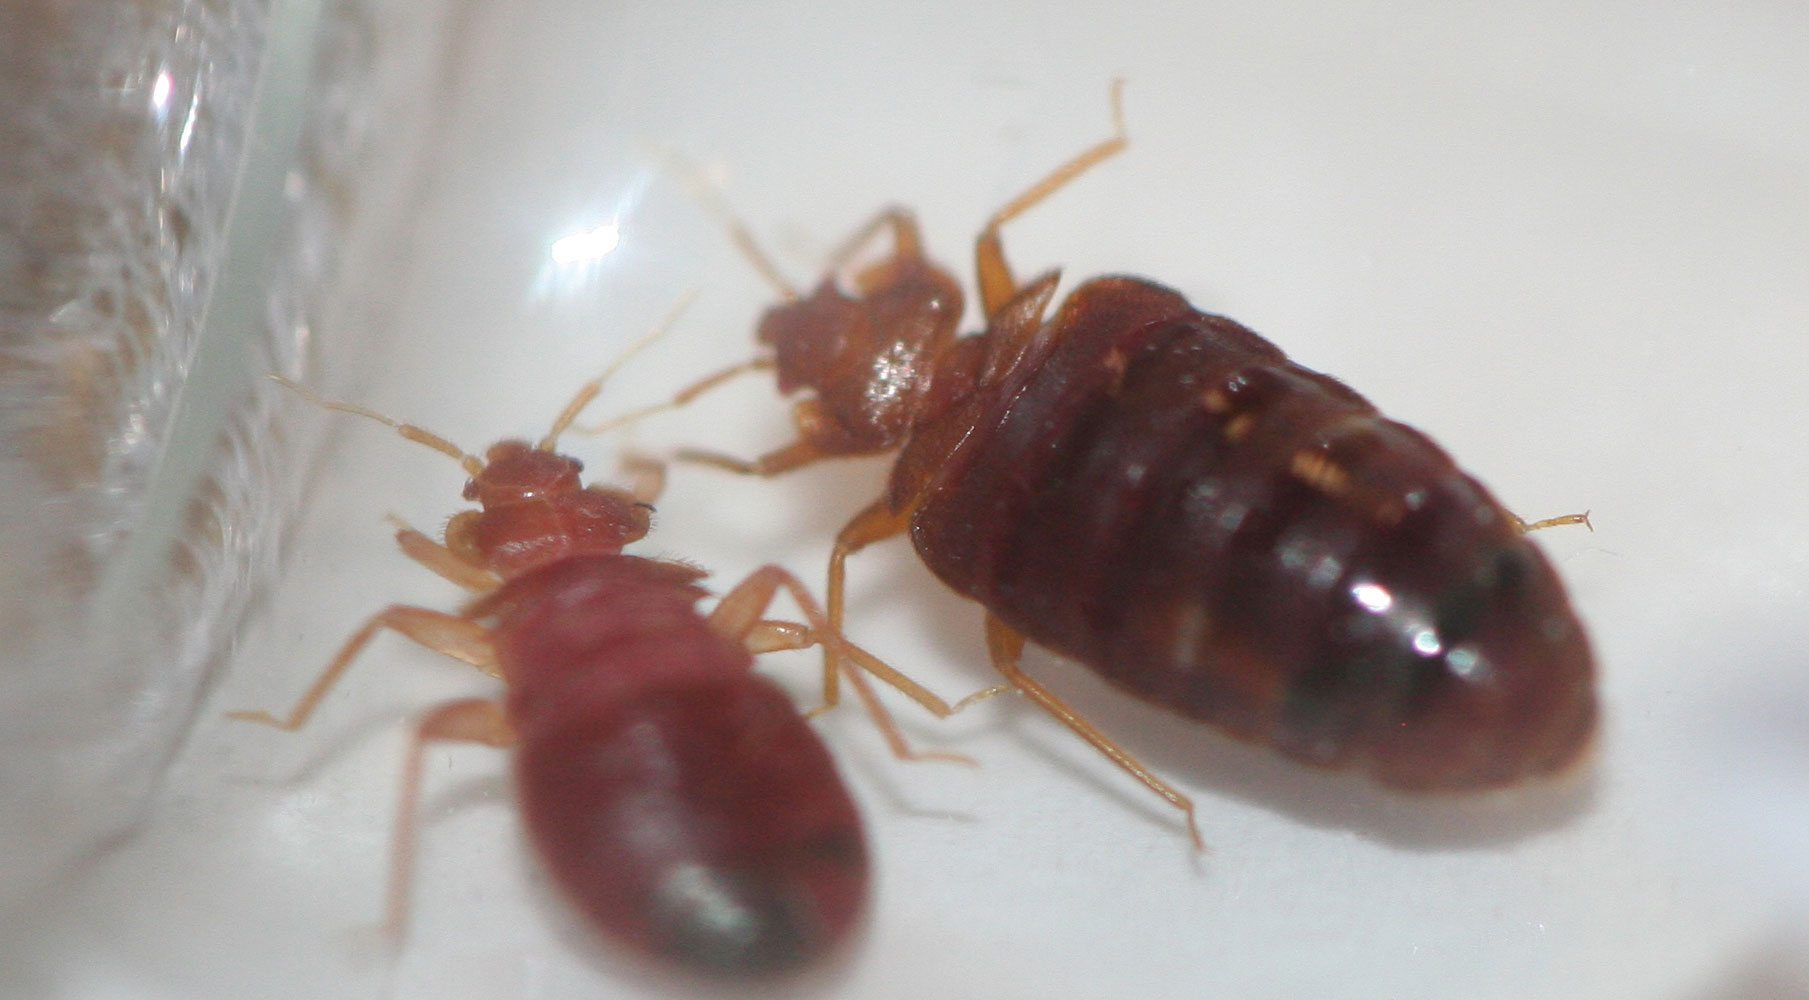 Images Of Bed Bugs How To Prevent Bed Bugs While Traveling Modern Pest